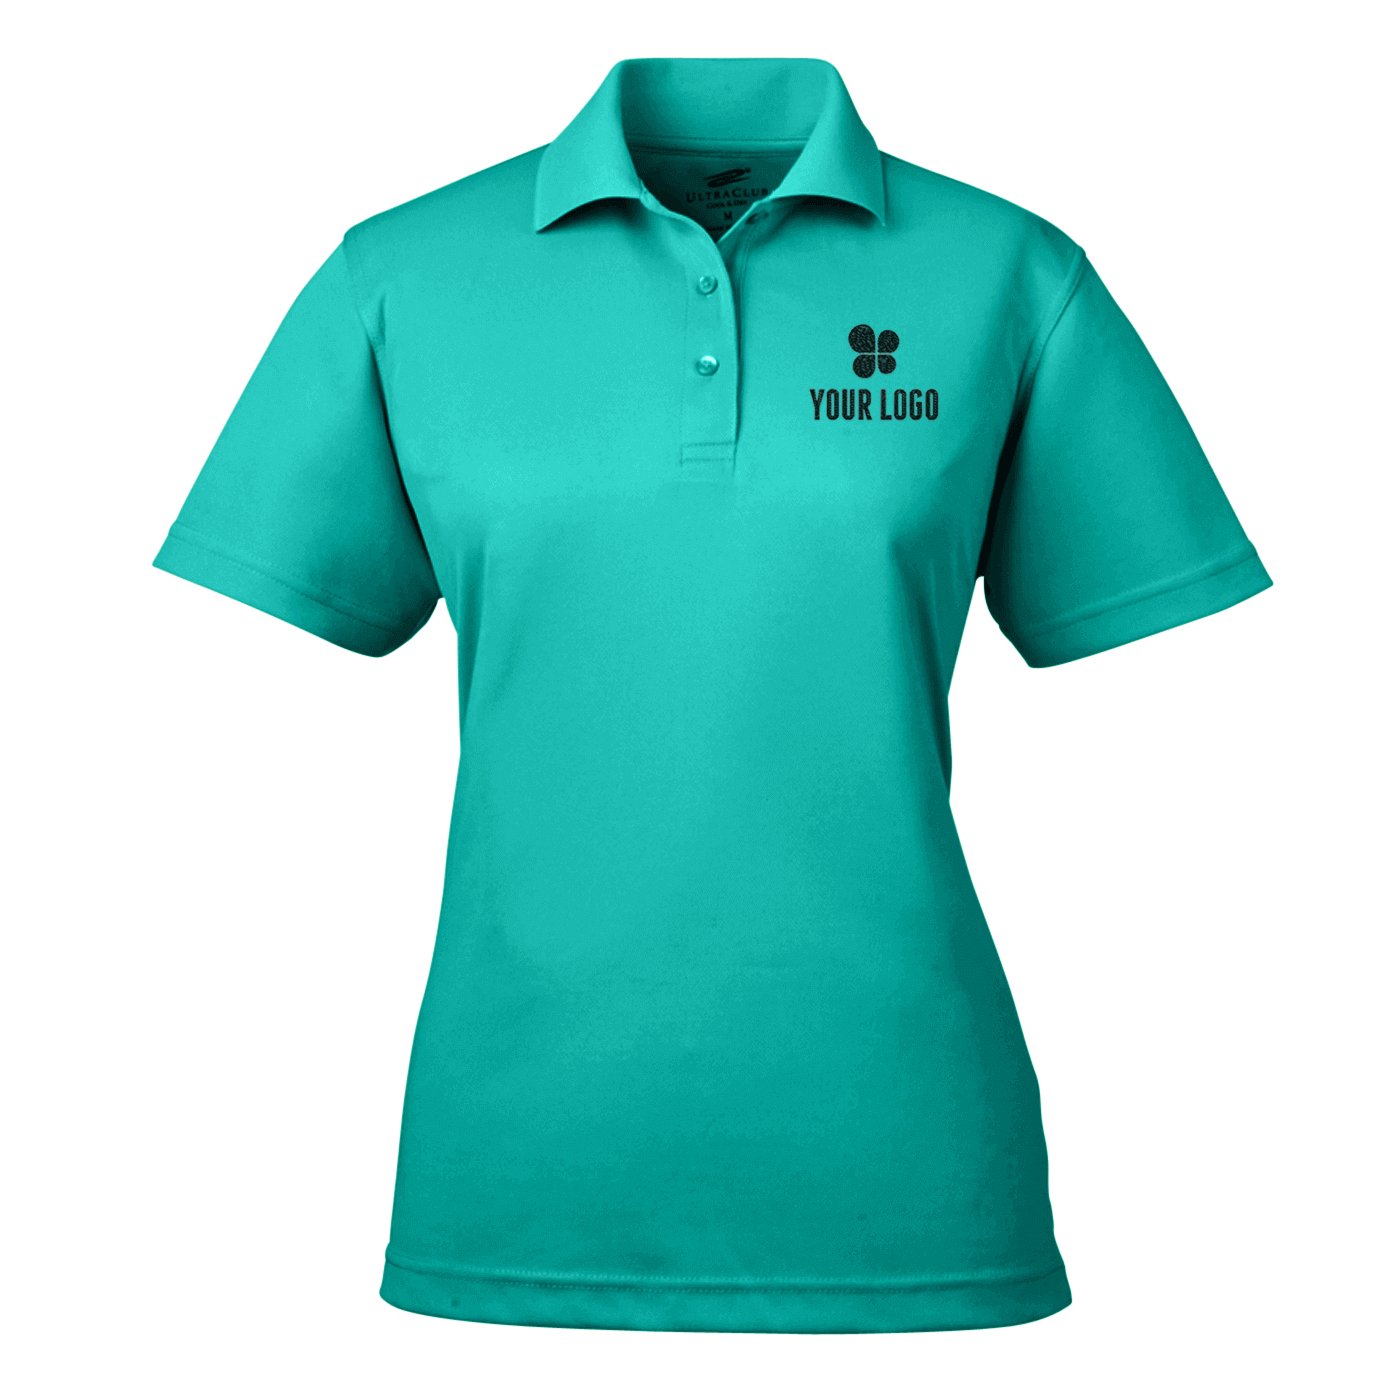 UltraClub Ladies' Cool and Dry Mesh Pique Polo